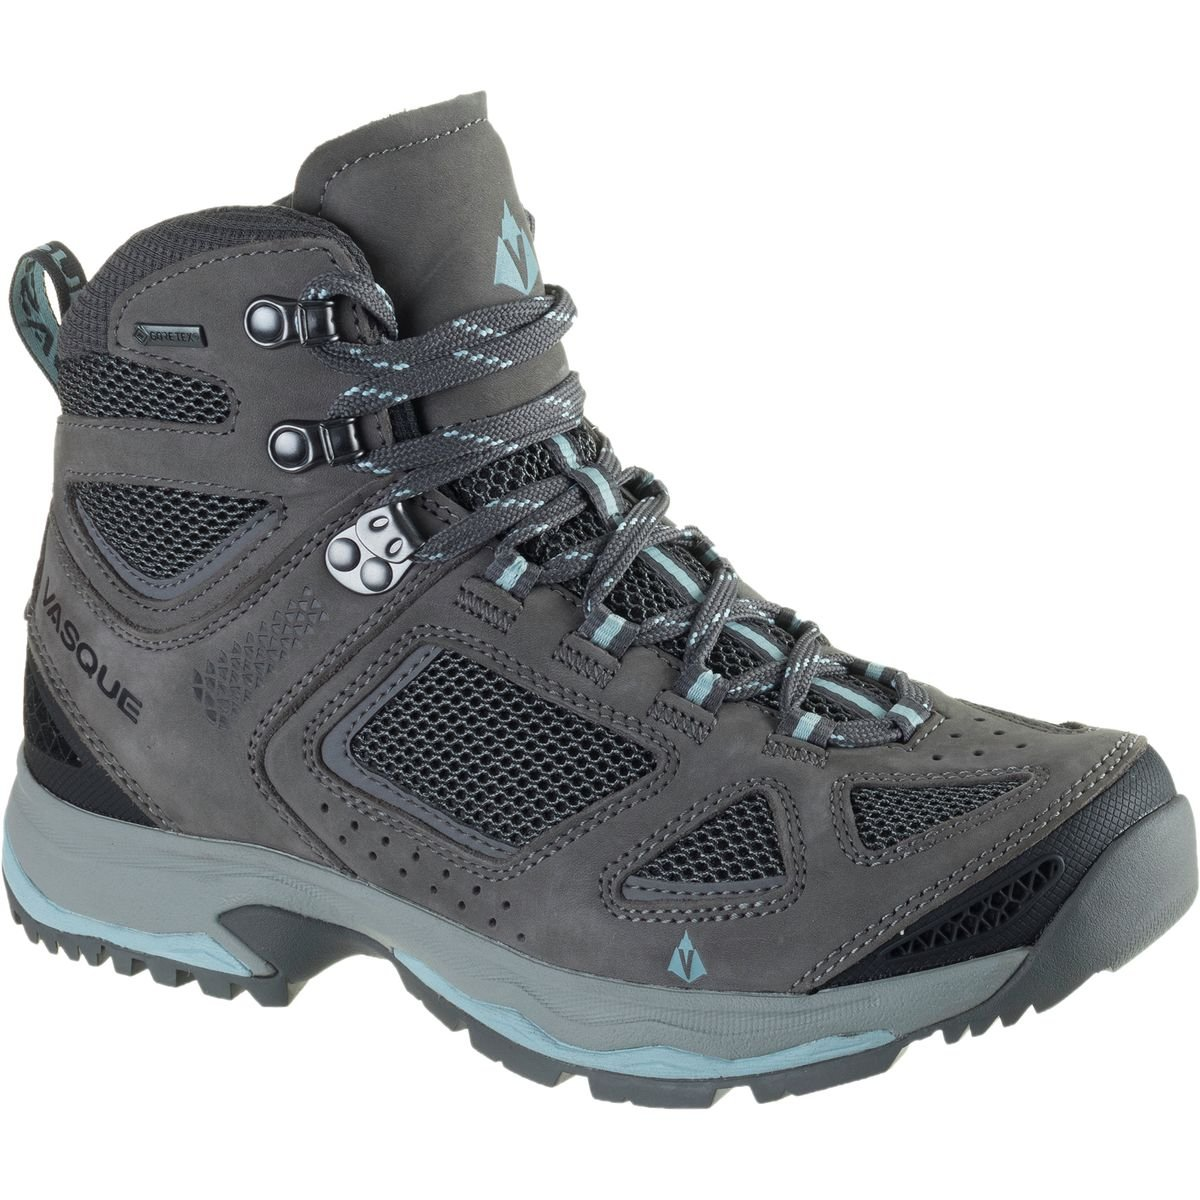 Vasque Breeze III GTX Boot - Women's Gargoyle / Stone Blue 10.5